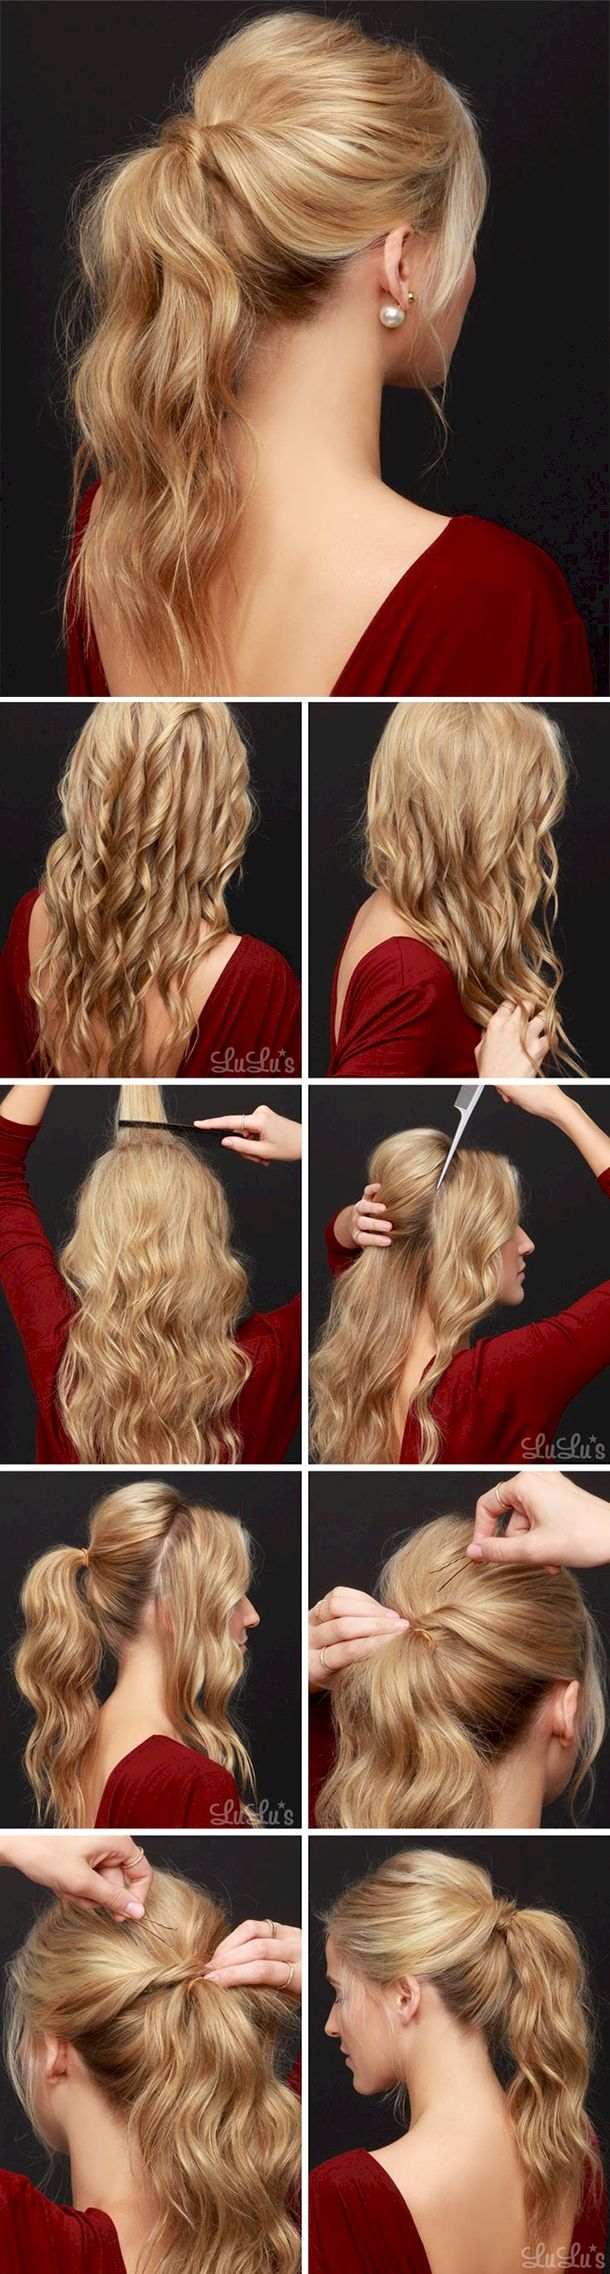 ponytail hacks for every hair length and every event hair